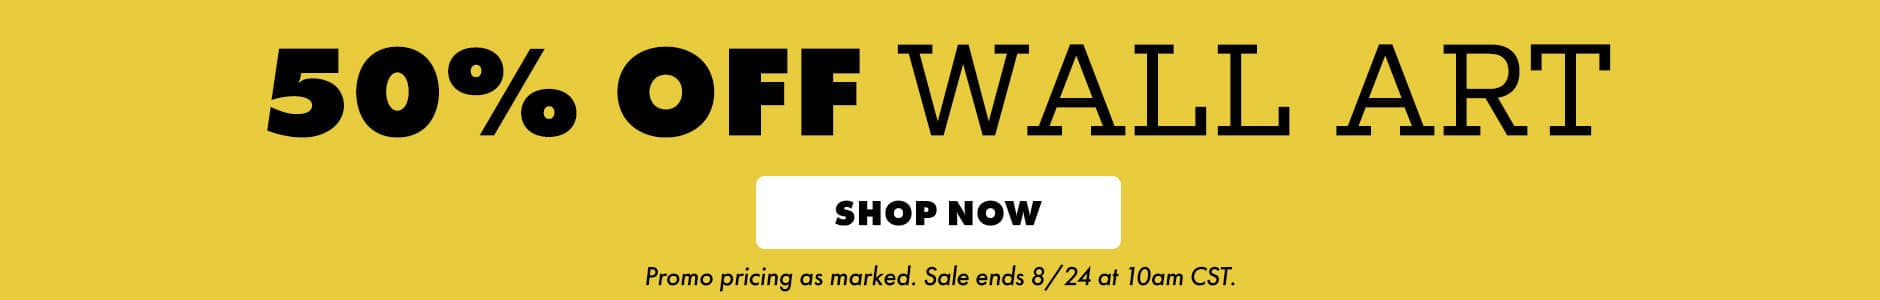 50% off wall art. Shop now. Promo pricing as marked. Sale ends 8/24 at 10am CST.